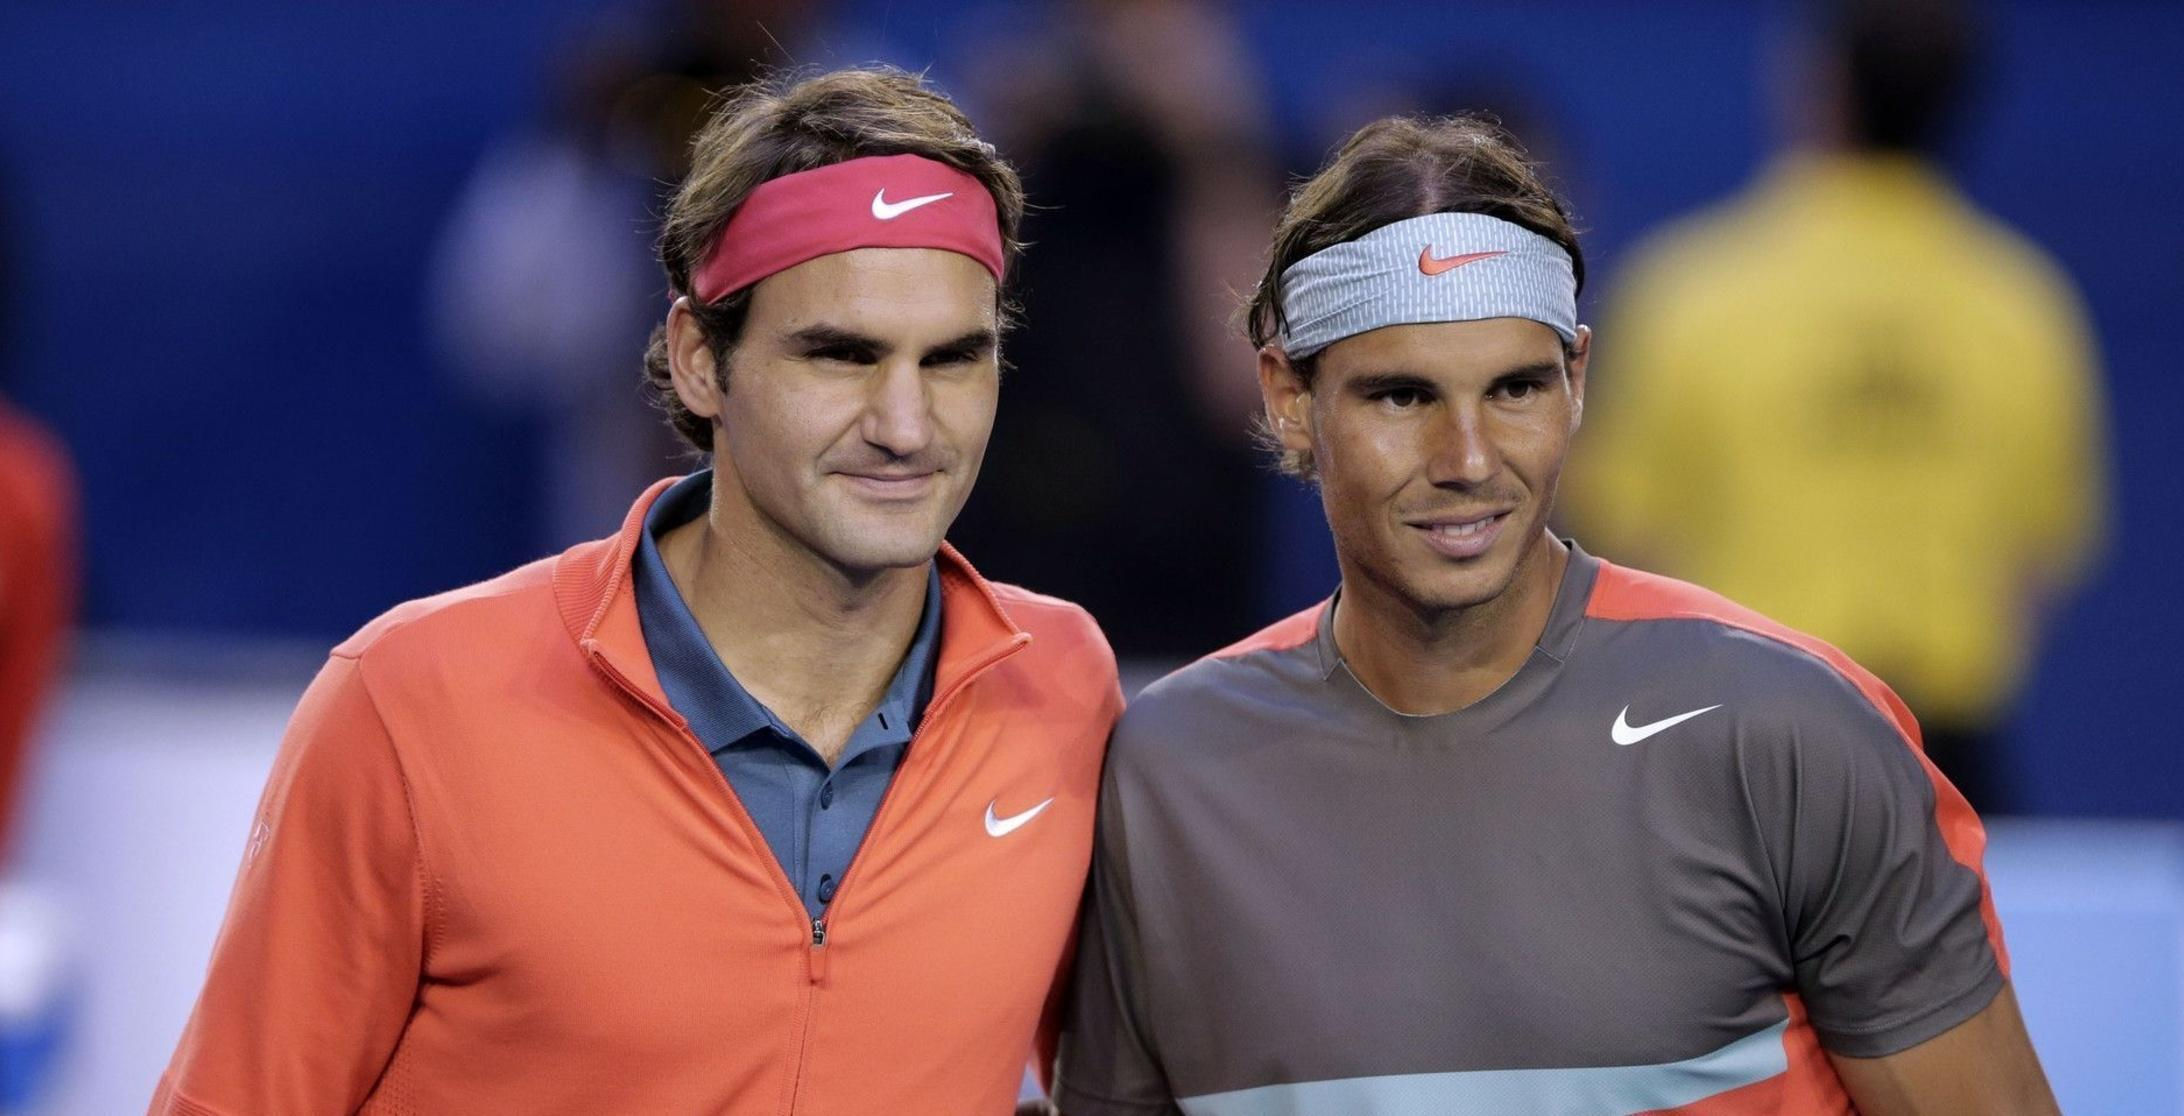 2019 Could Be The Last Year We Will See Both Roger Federer And Rafael Nadal In Action Which Is Something Tennis Fans Are Not Ready For